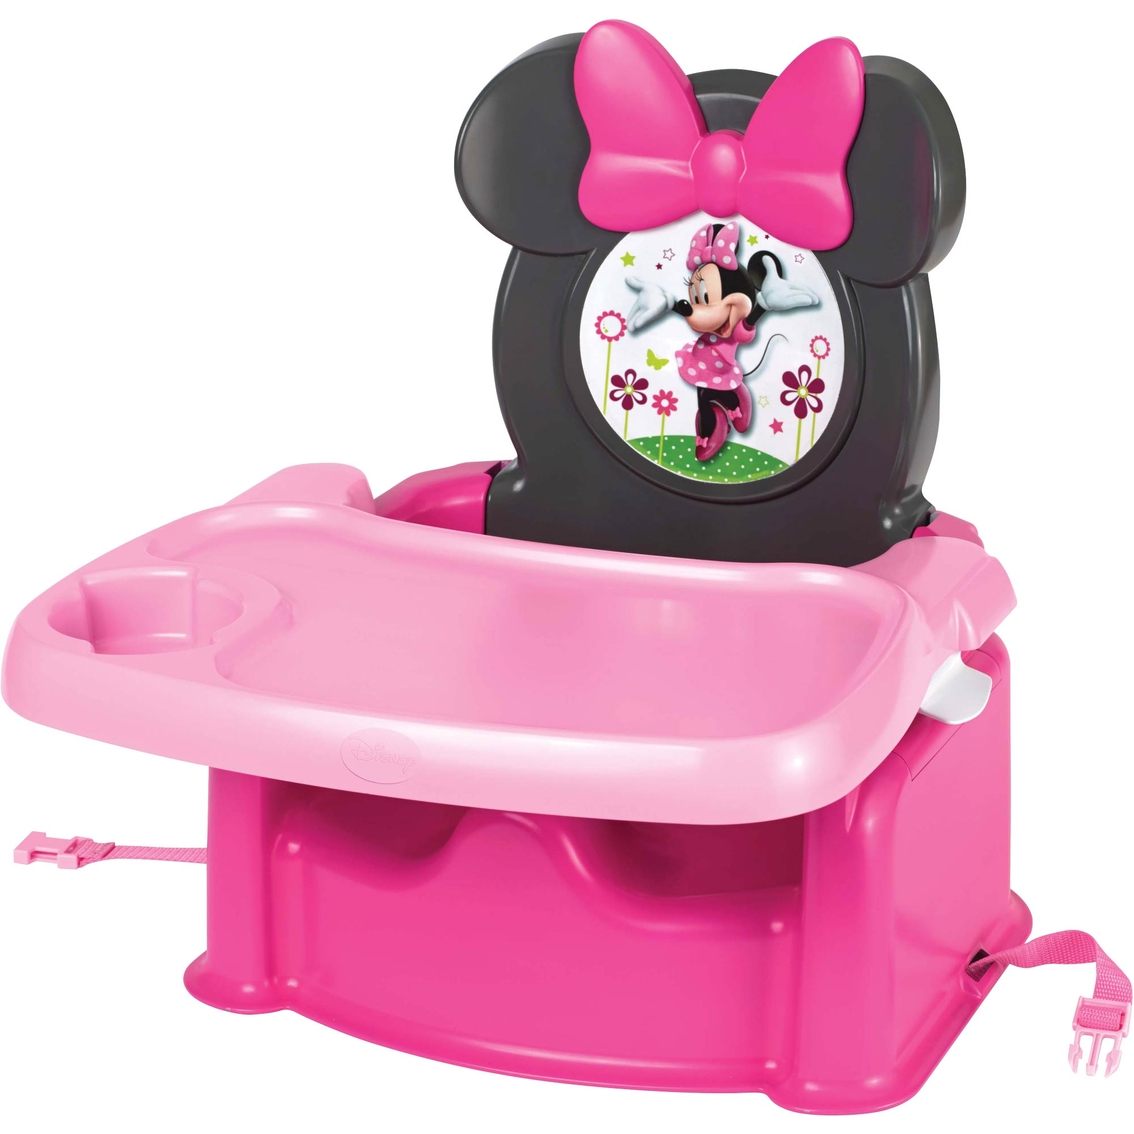 The First Years Disney Minnie Mouse Booster Seat Booster Seats